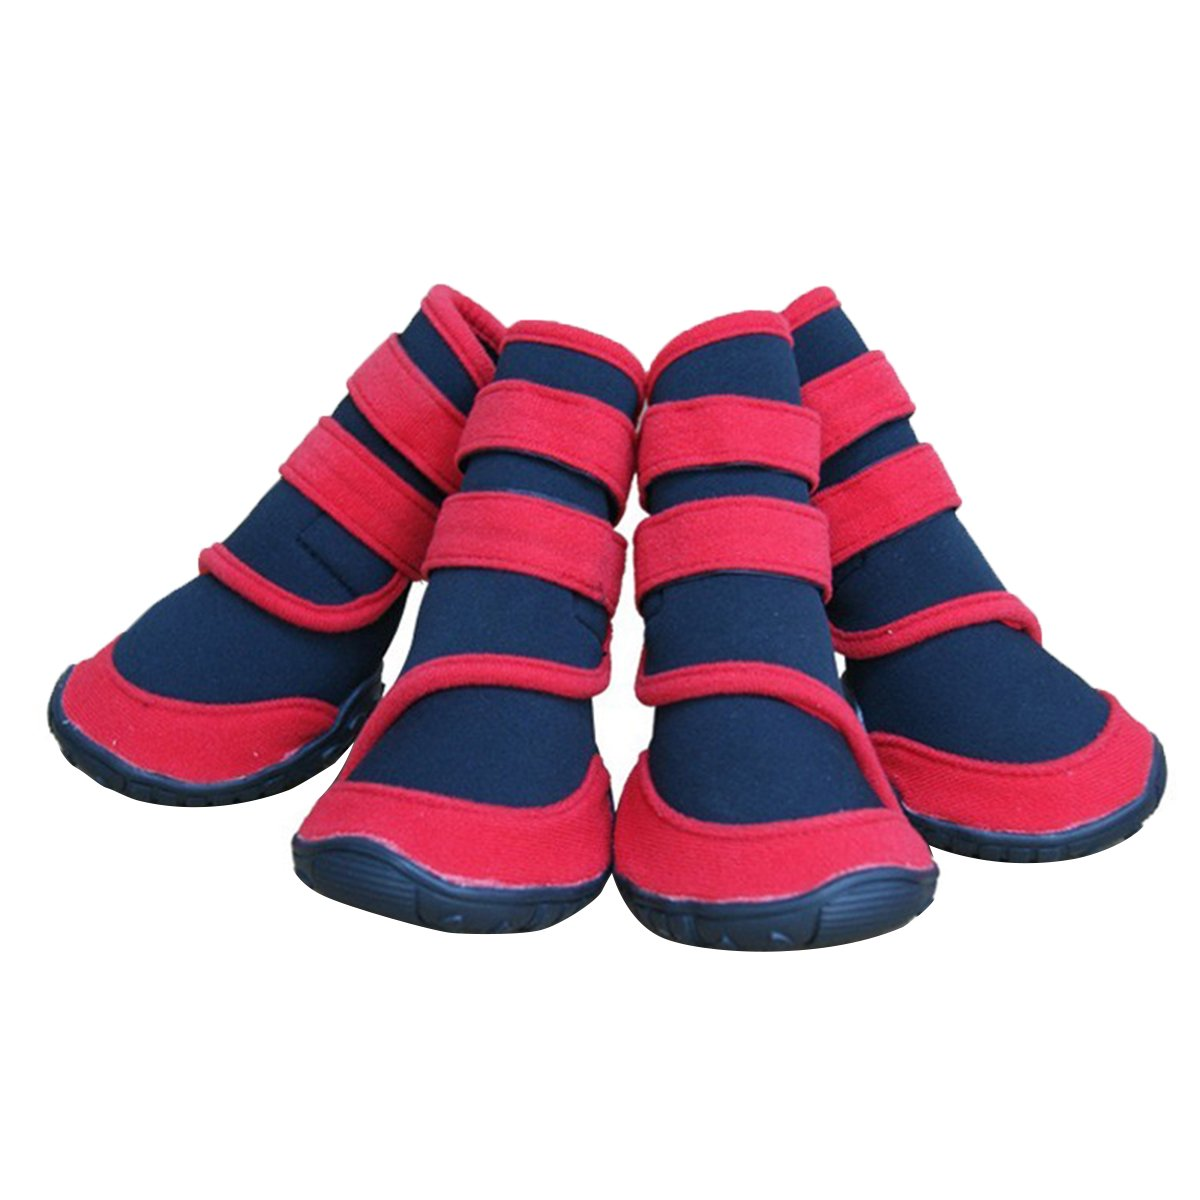 Red M Red M Adorrable Anti Slip Dog shoes Waterproof Winter Warm Small Medium Large Pet Rainboots, Red, Medium